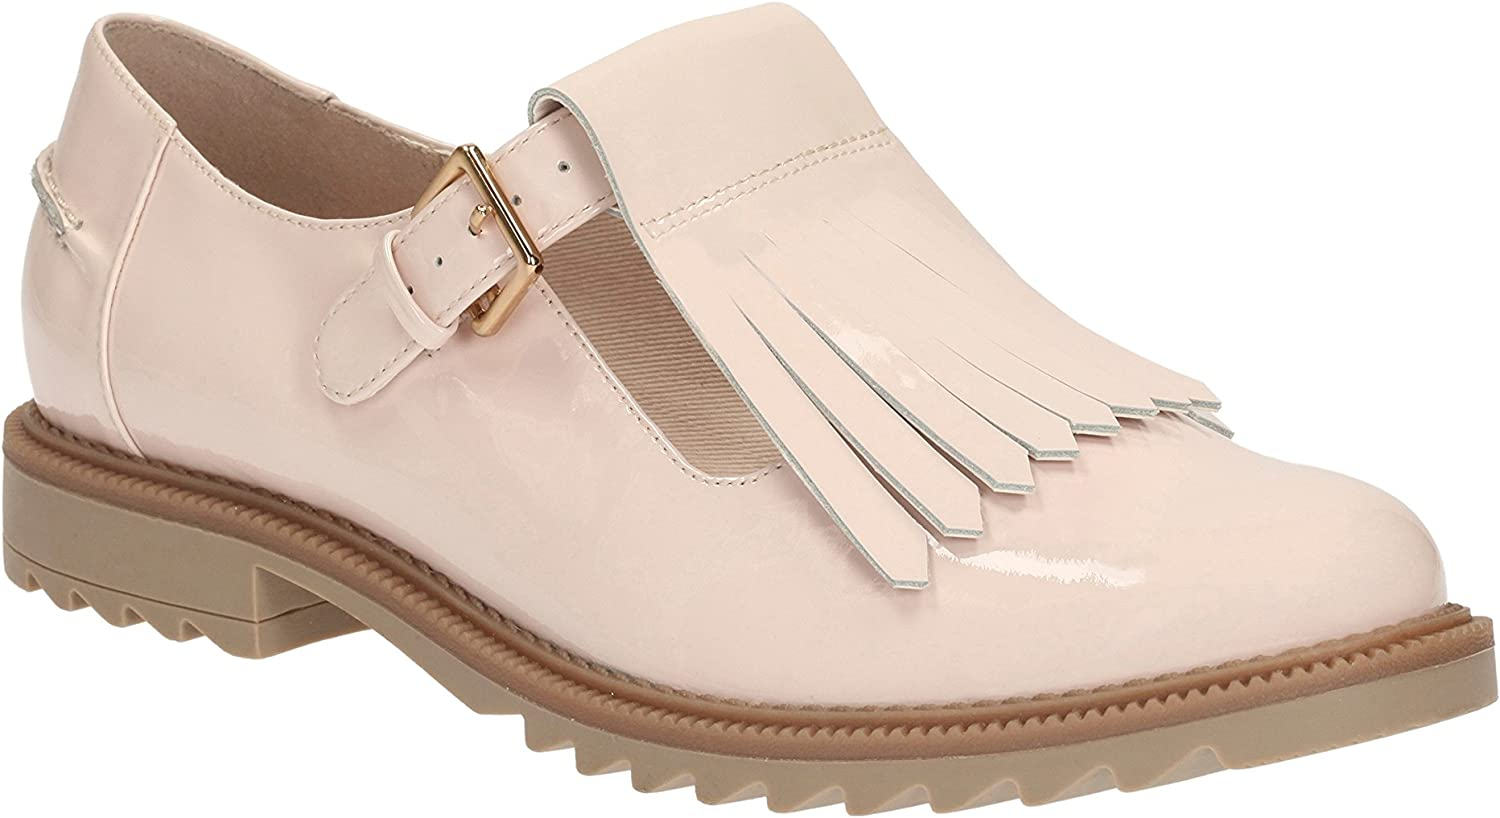 Clarks Griffin Mia Leather Shoes In